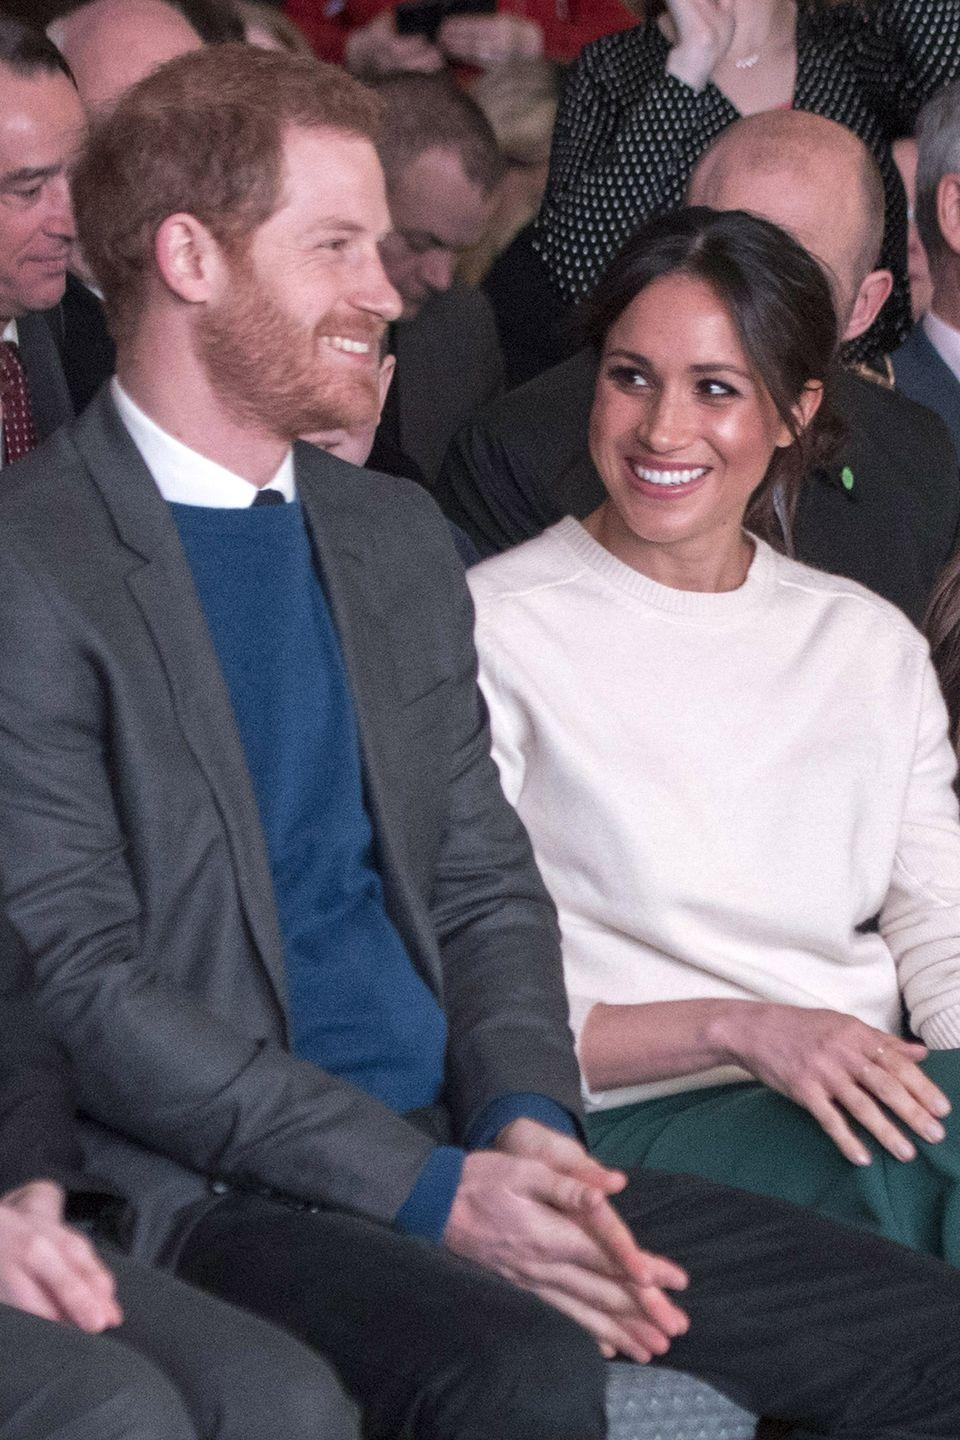 <p>Inside the event, the couple exchanged smiles amongst other attendees. </p>